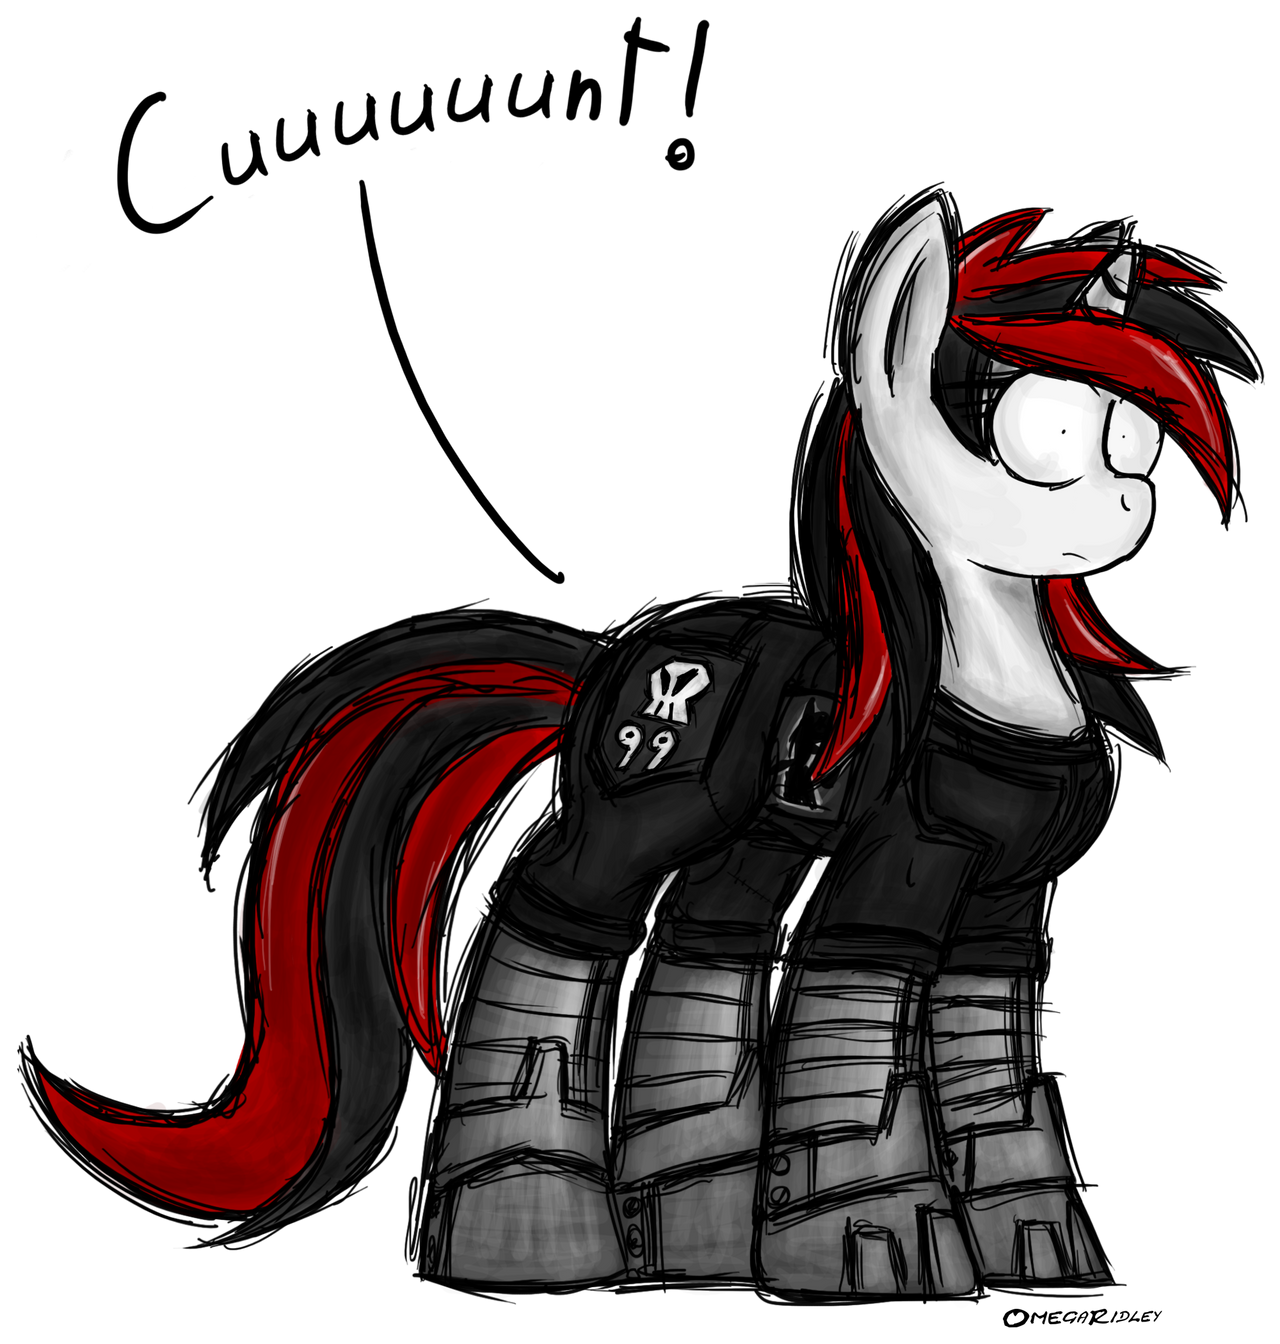 [FoE/PH] Blackjack MkII by TheOmegaRidley